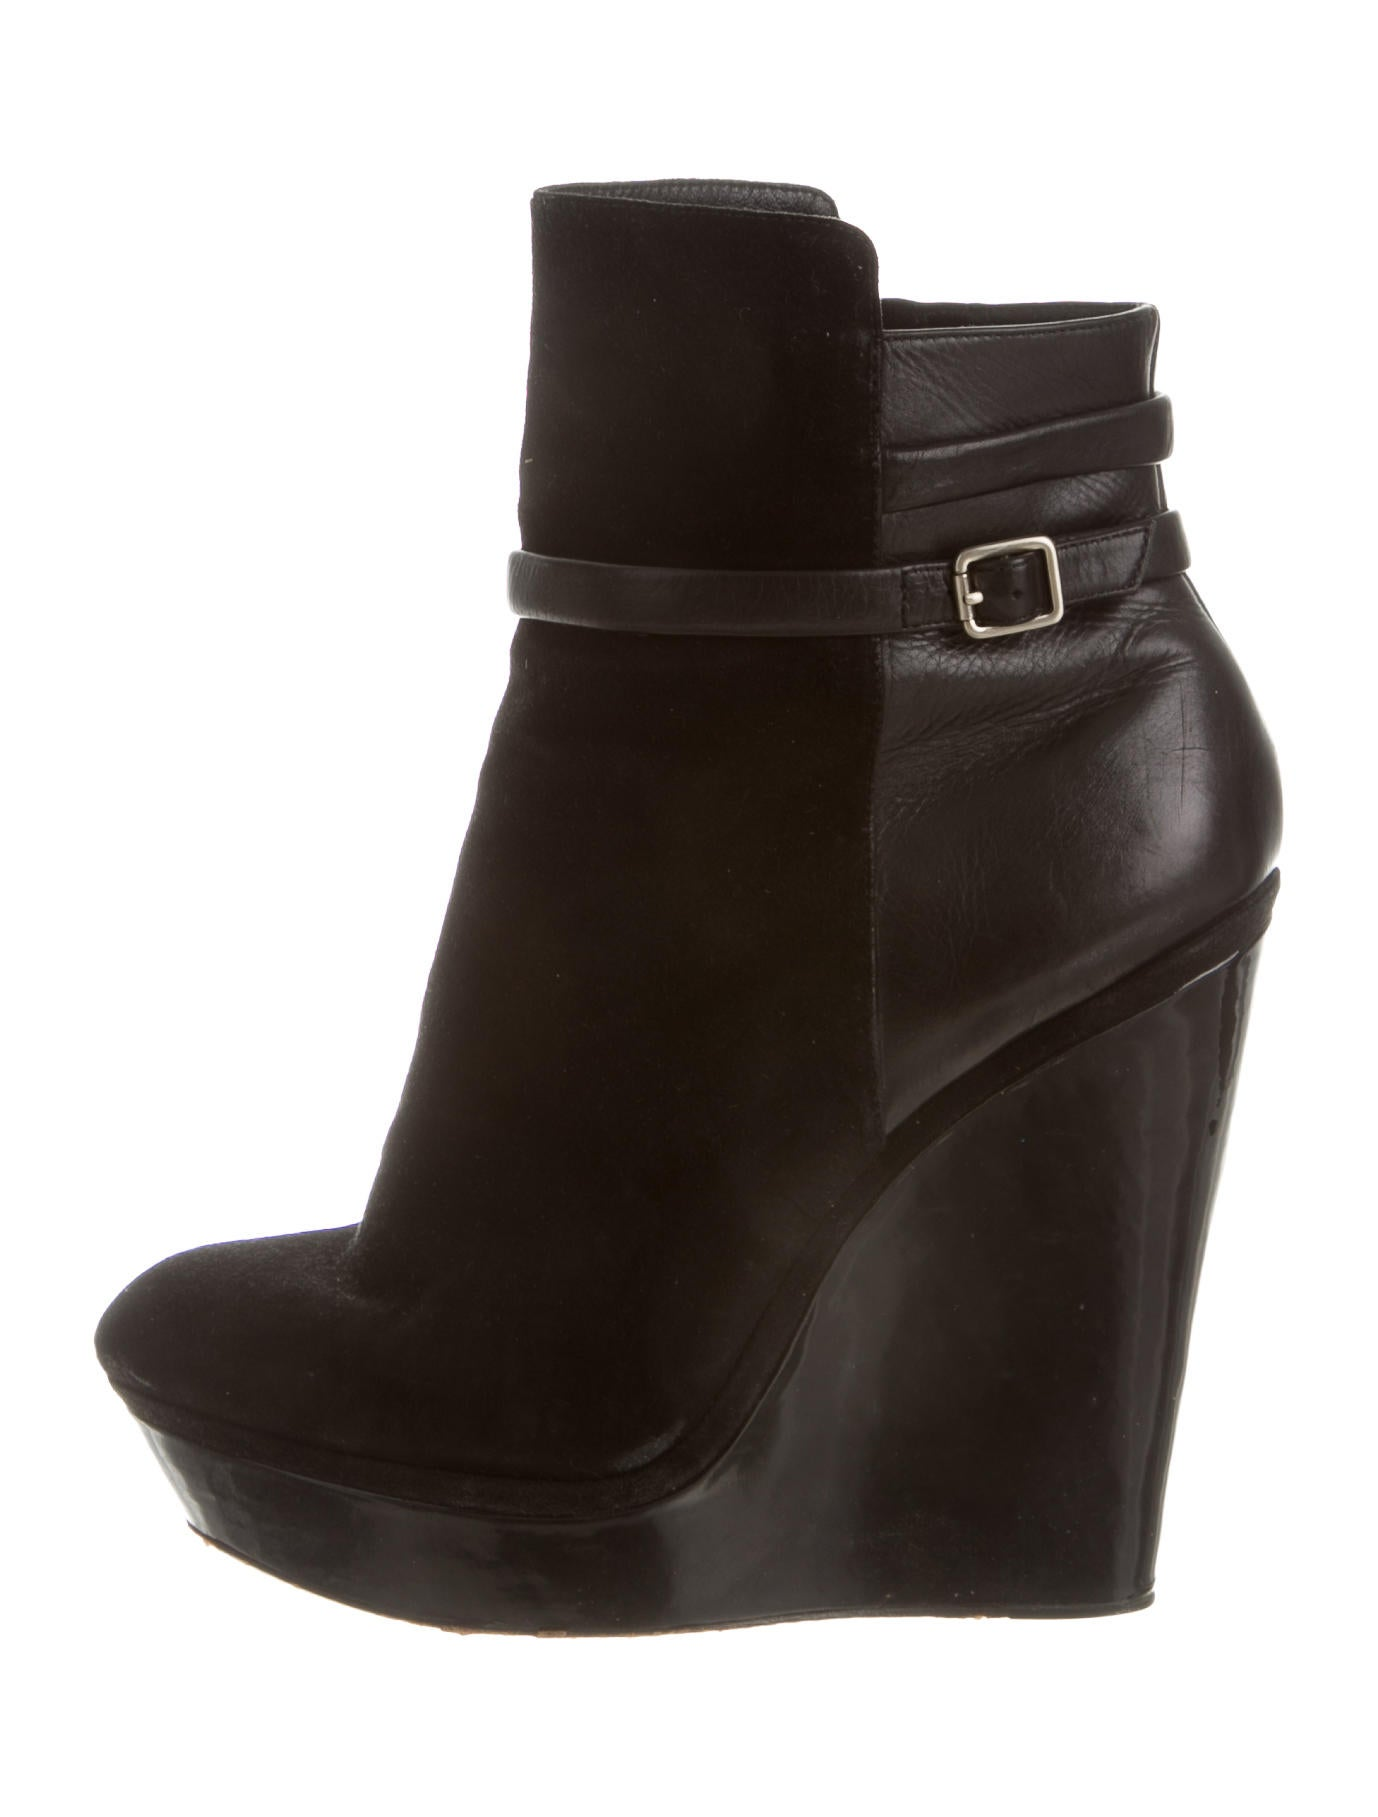 brian atwood suede wedge ankle boots shoes bri22951